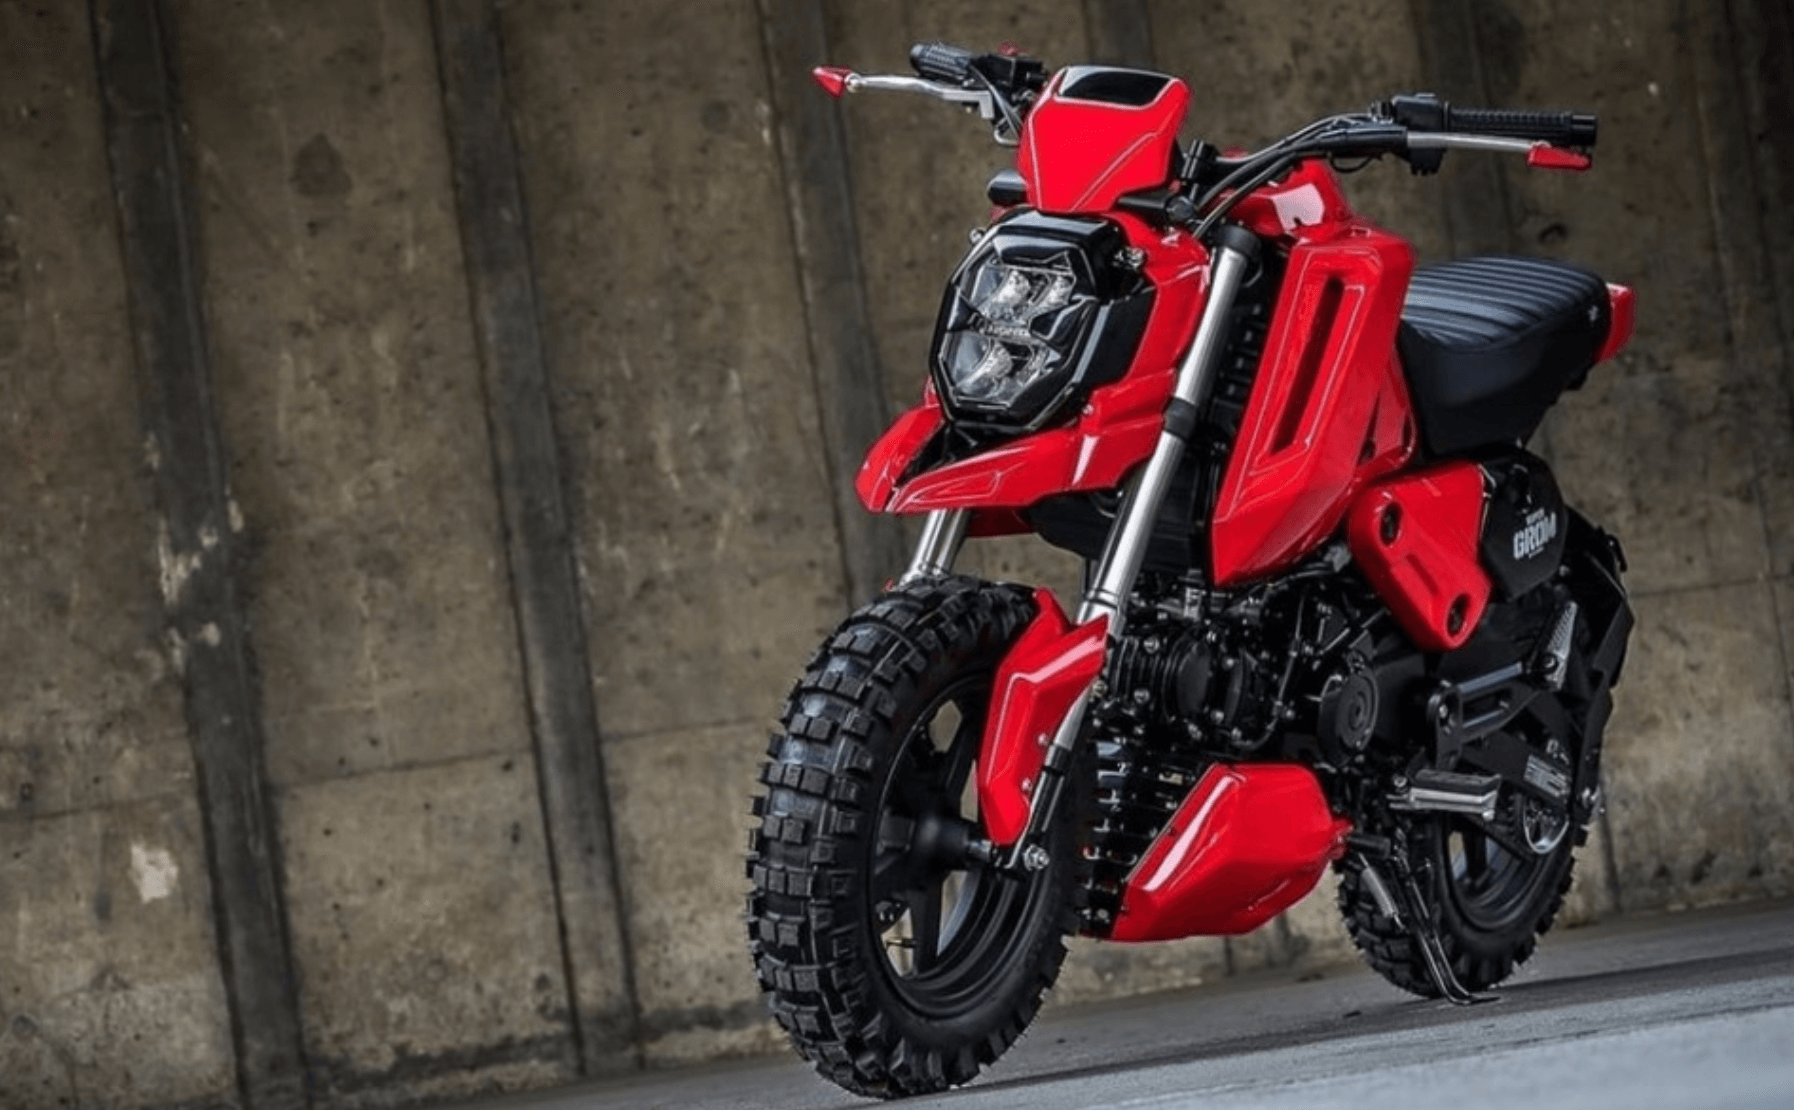 K-SPEED SUPER GROM MOTORSİKLET foto